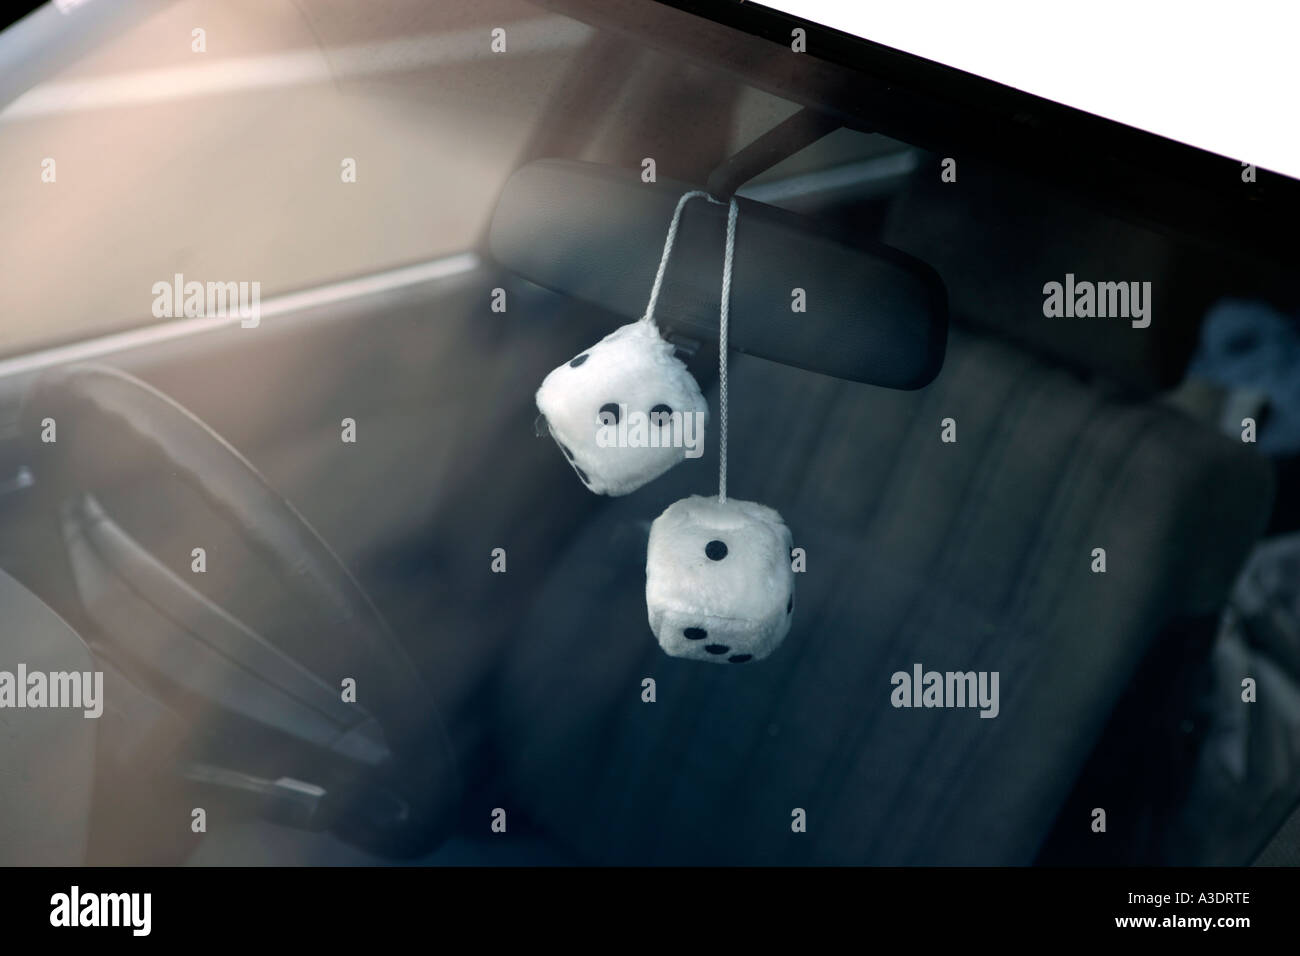 Two fluffy dice hanging on rear-view-mirror of a car, seen through windscreen - Stock Image